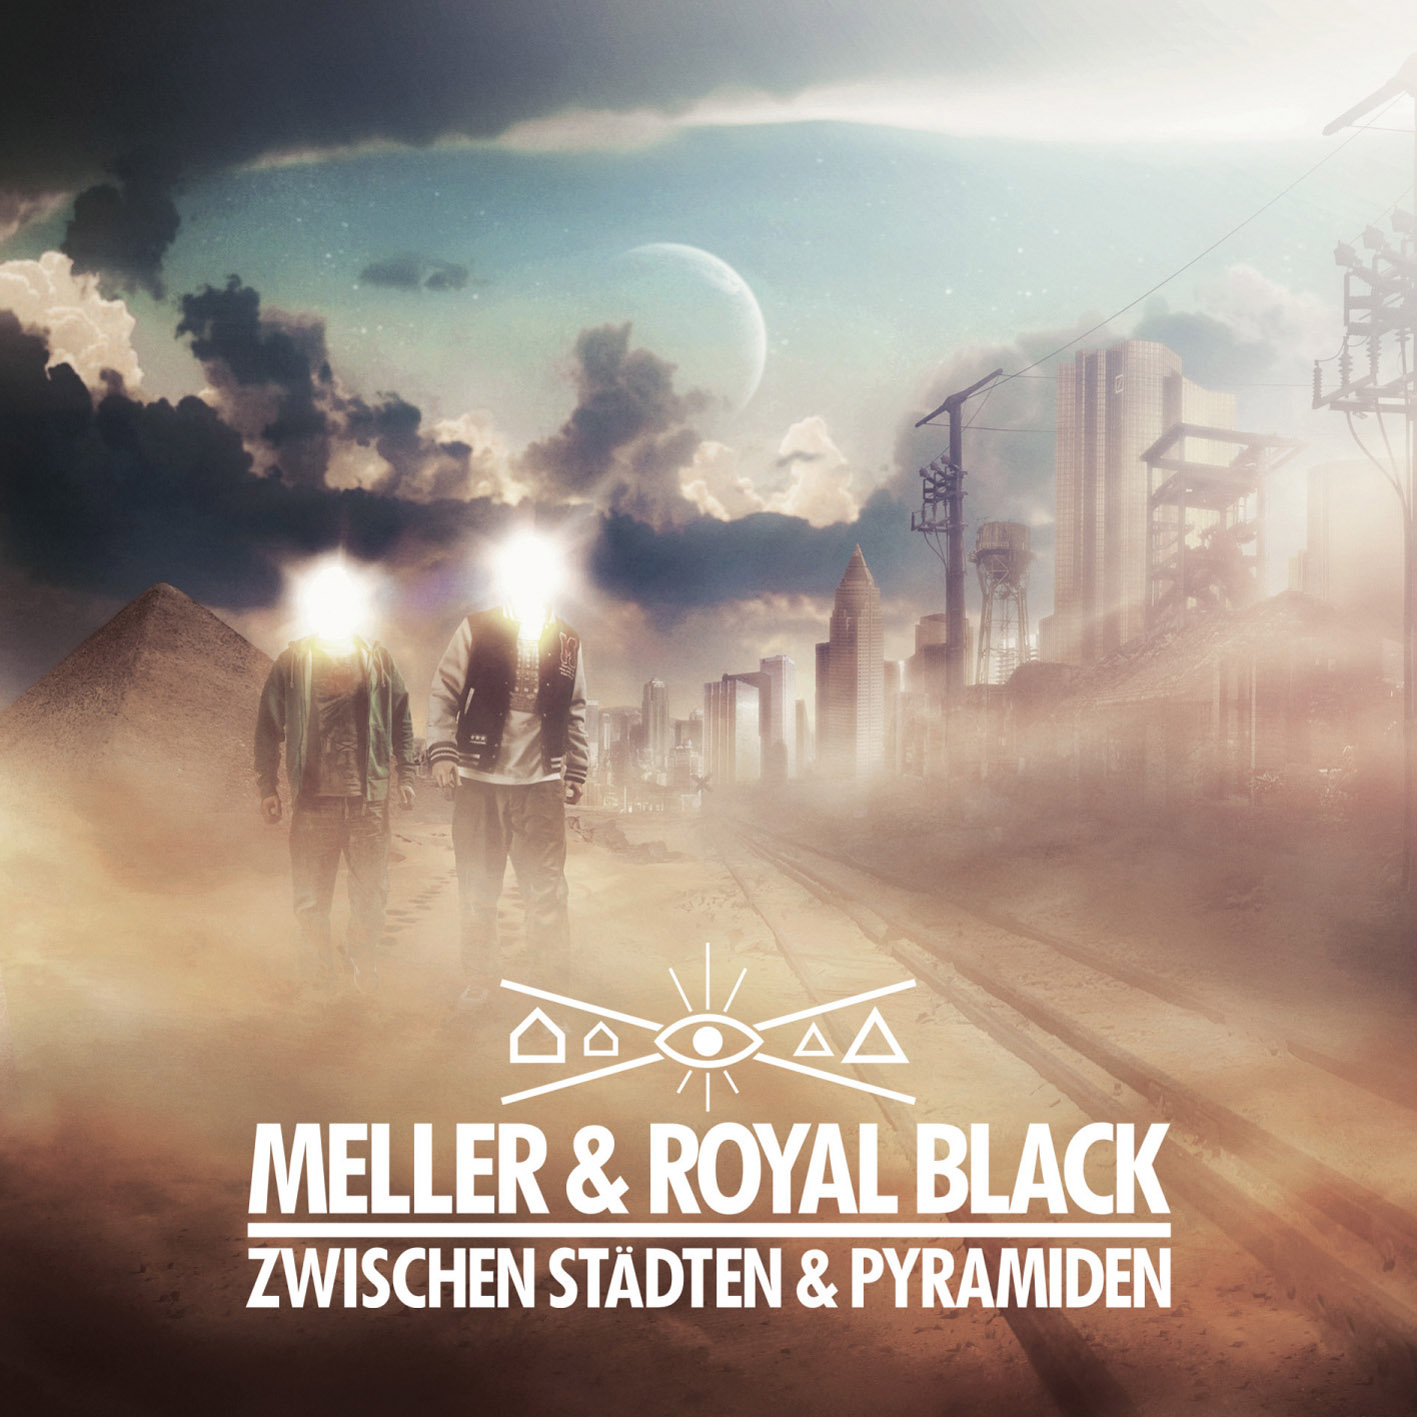 Meller & Royal Black